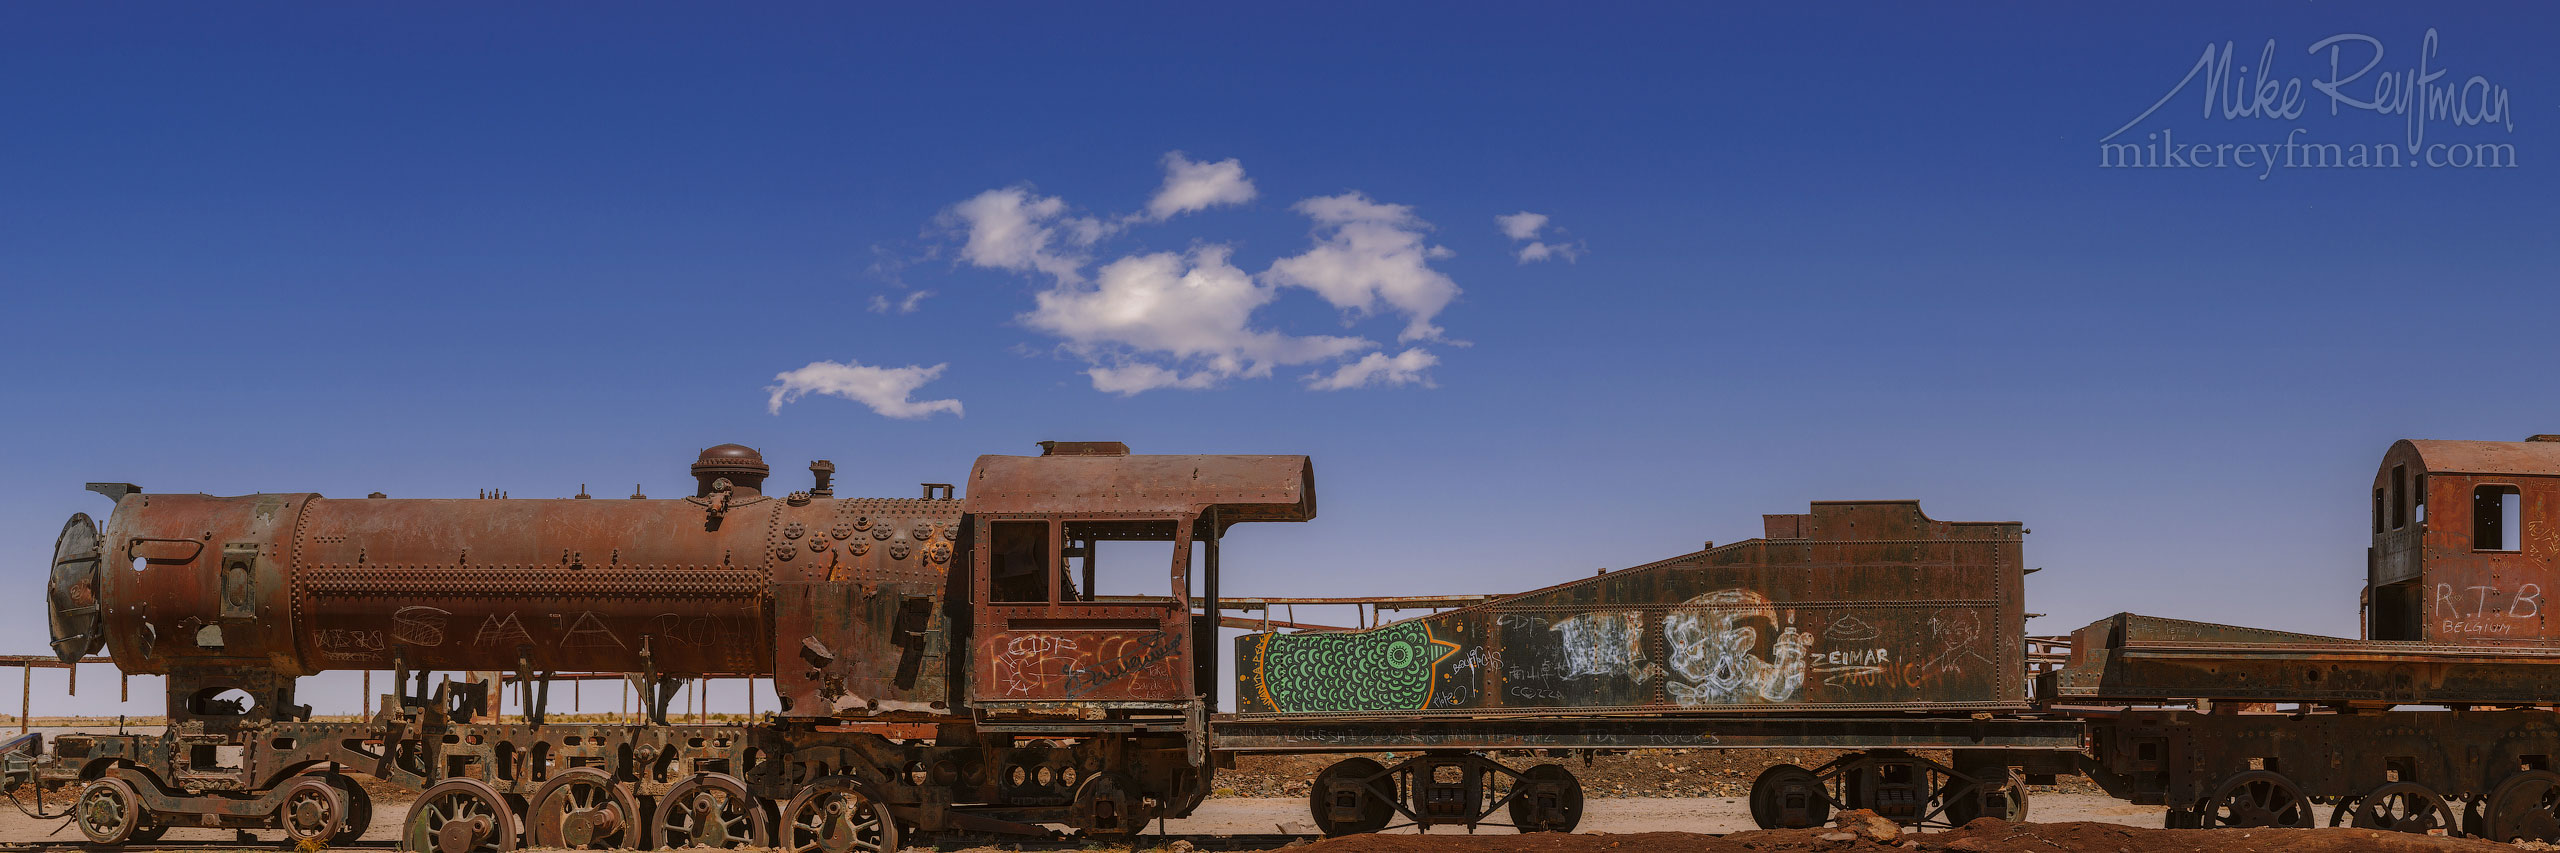 The ''Cementerio de trenes'', the antique train cemetery. Salar de Uyuni, Altiplano. Daniel Campos Province, Potosí, Bolivia AA1-AIR2065_Pano_1x3_6 - Atacama and Altiplano. The Driest Desert and The High Plain - Mike Reyfman Photography